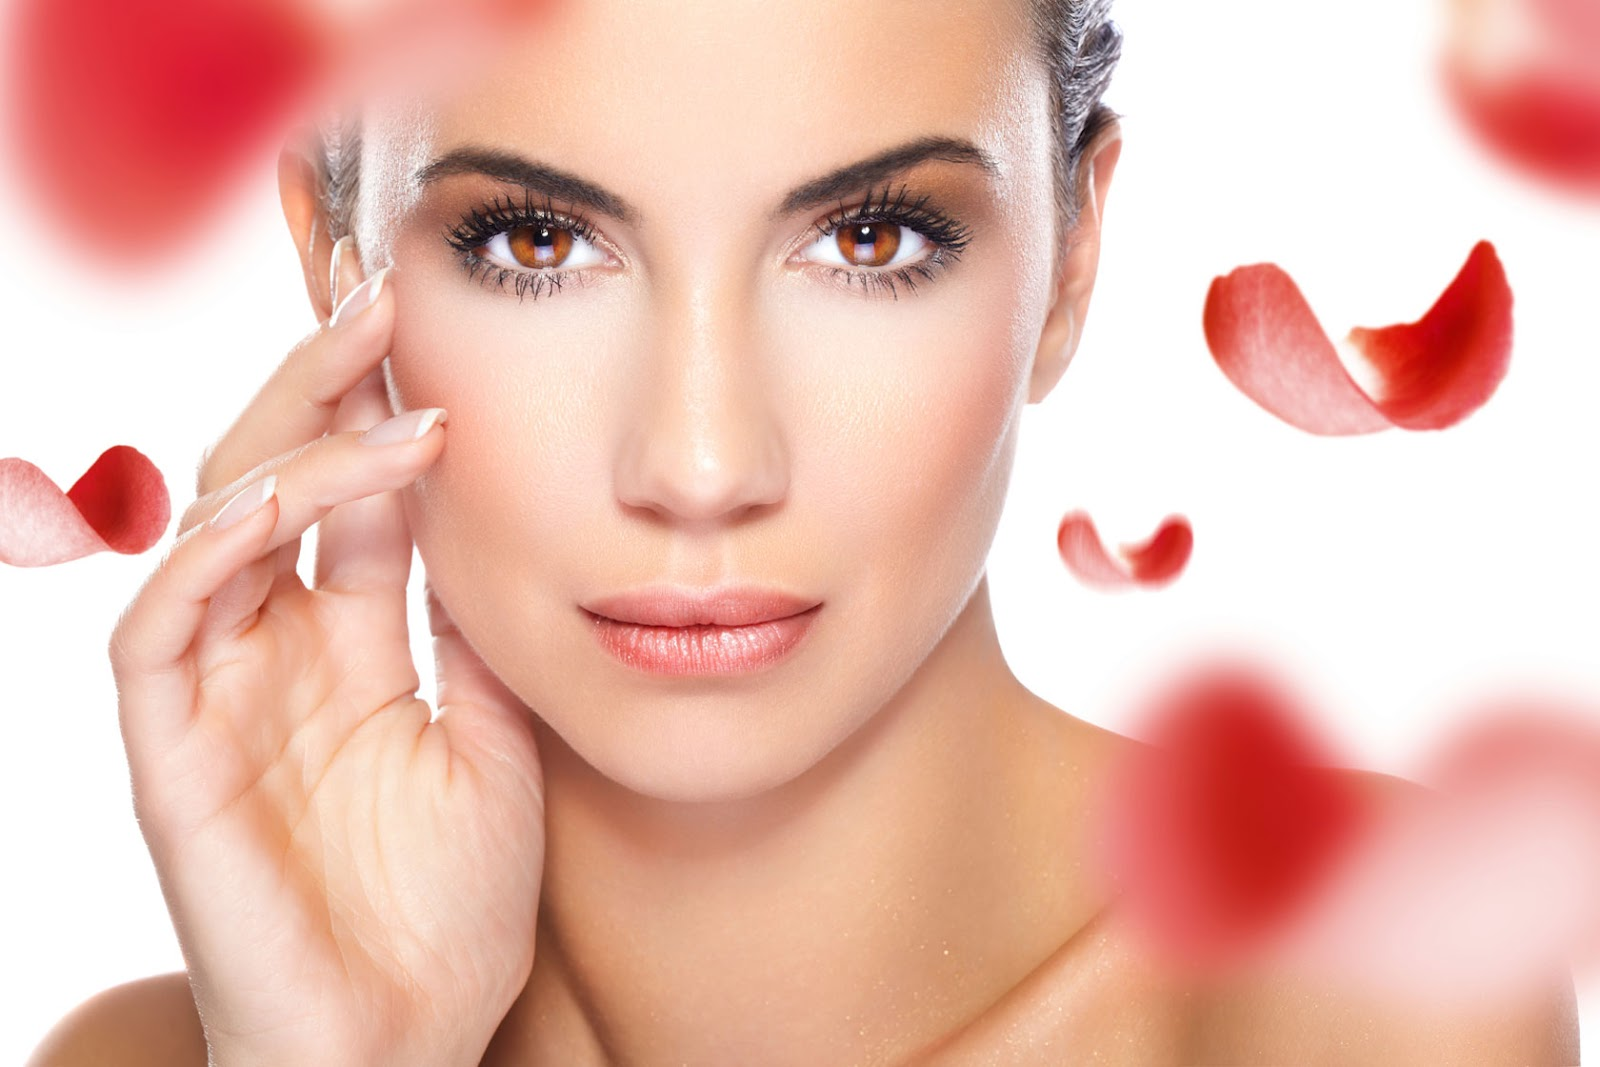 13 Effective Health and Beauty Tips